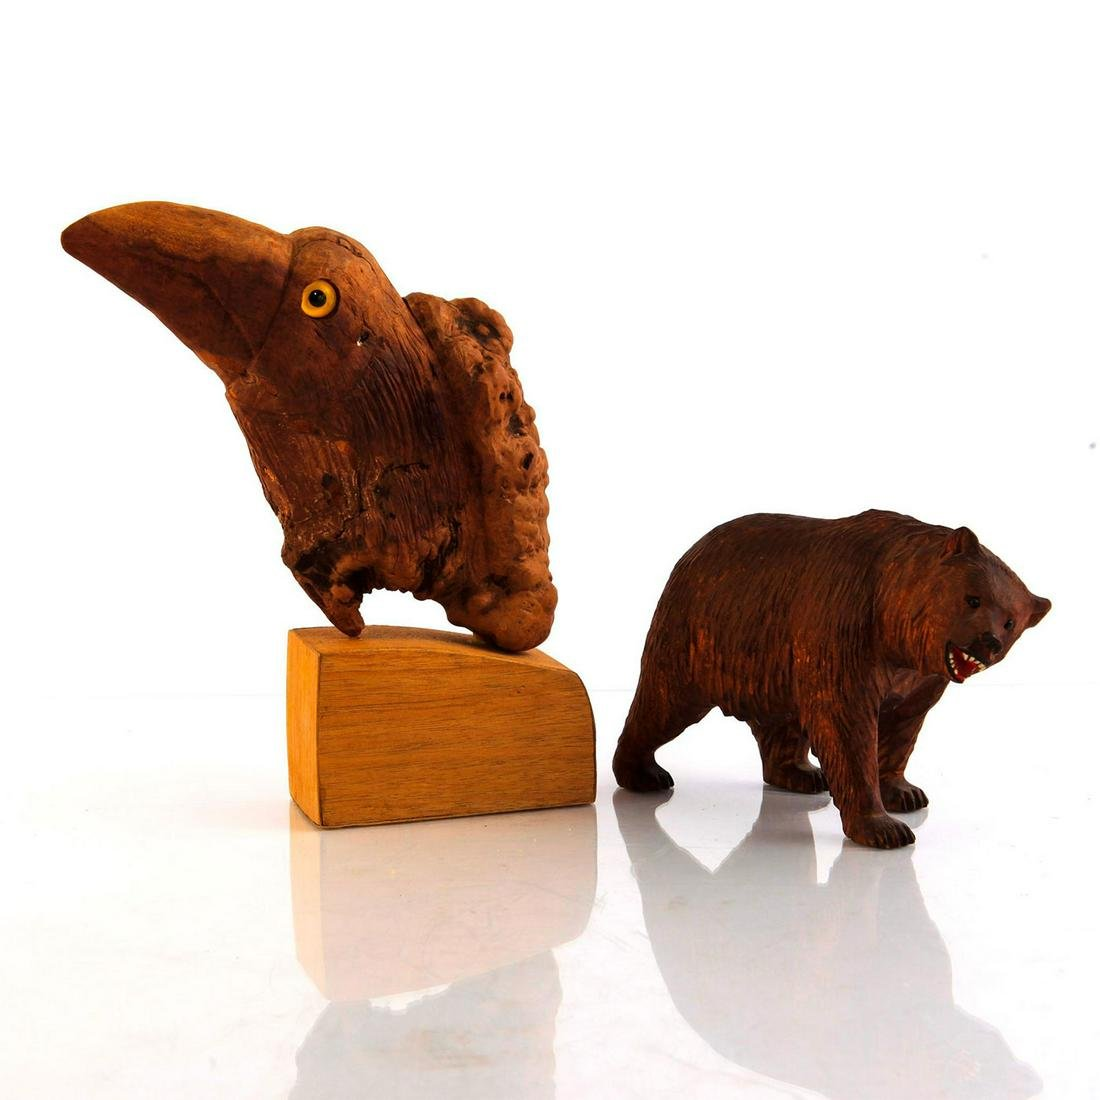 2 CARVED WOODEN ANIMAL FIGURES